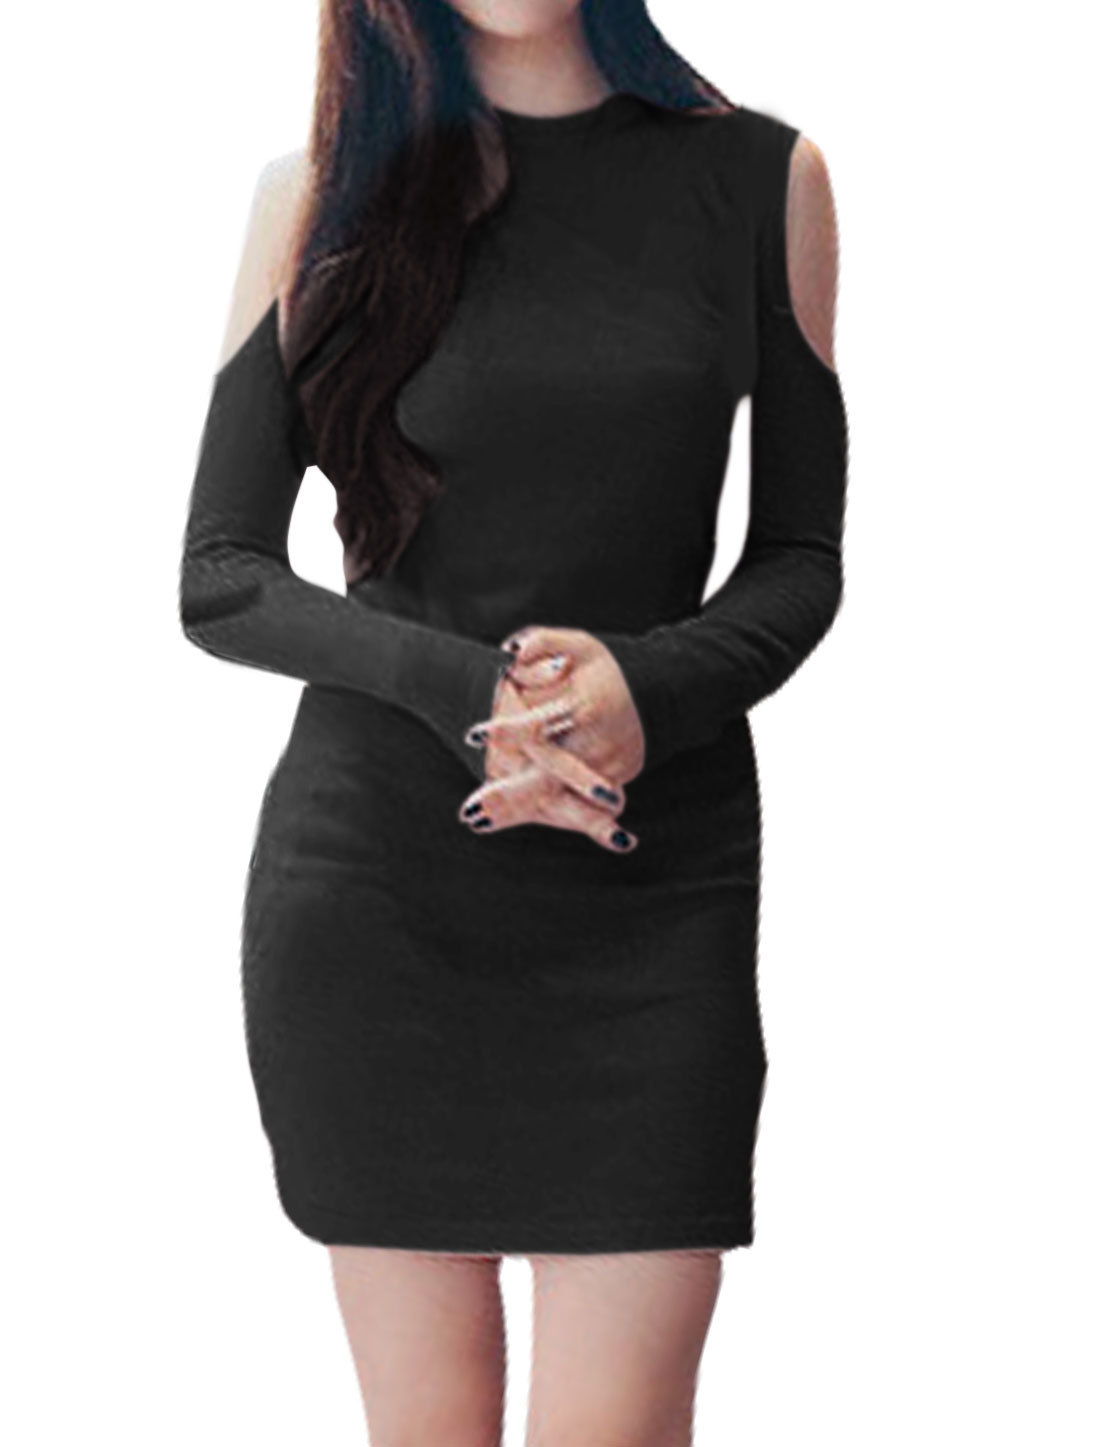 Women Long Sleeves Crew Neck Cut Out Shoulder Bodycon Dress Black XS